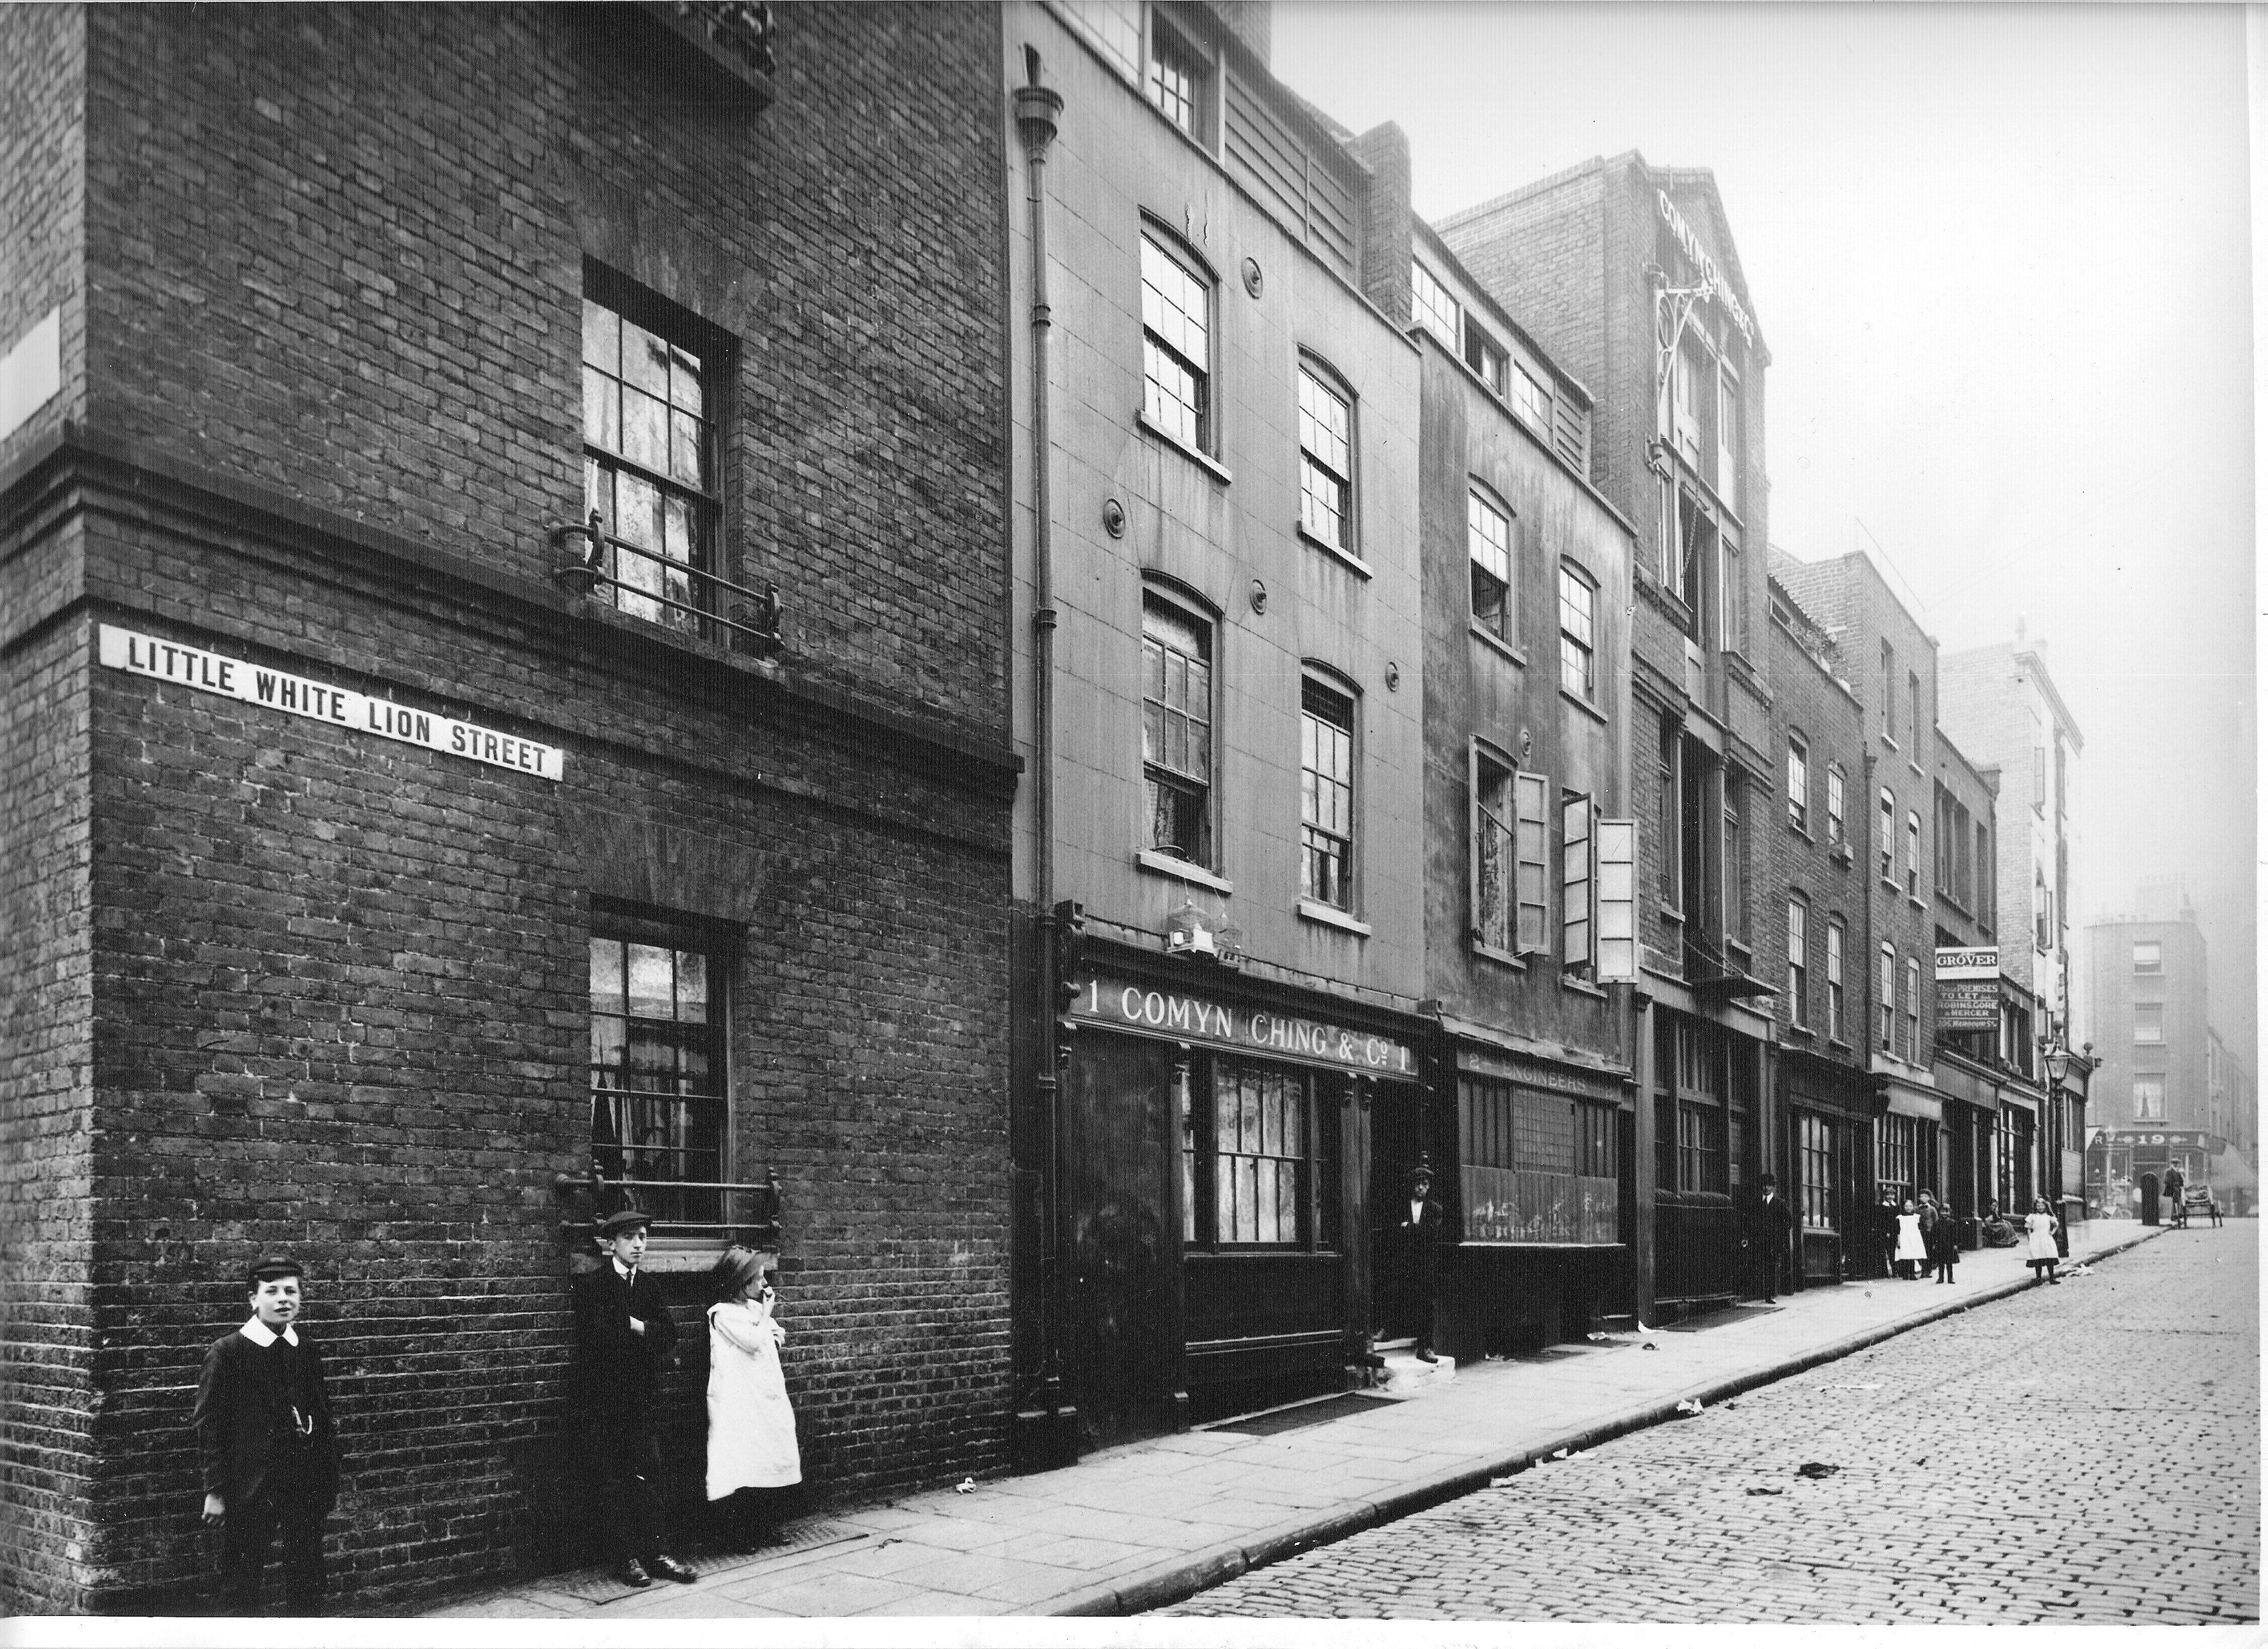 1913 Little White Lion Street, now Mercer Street, showing the hoist at No. 23.